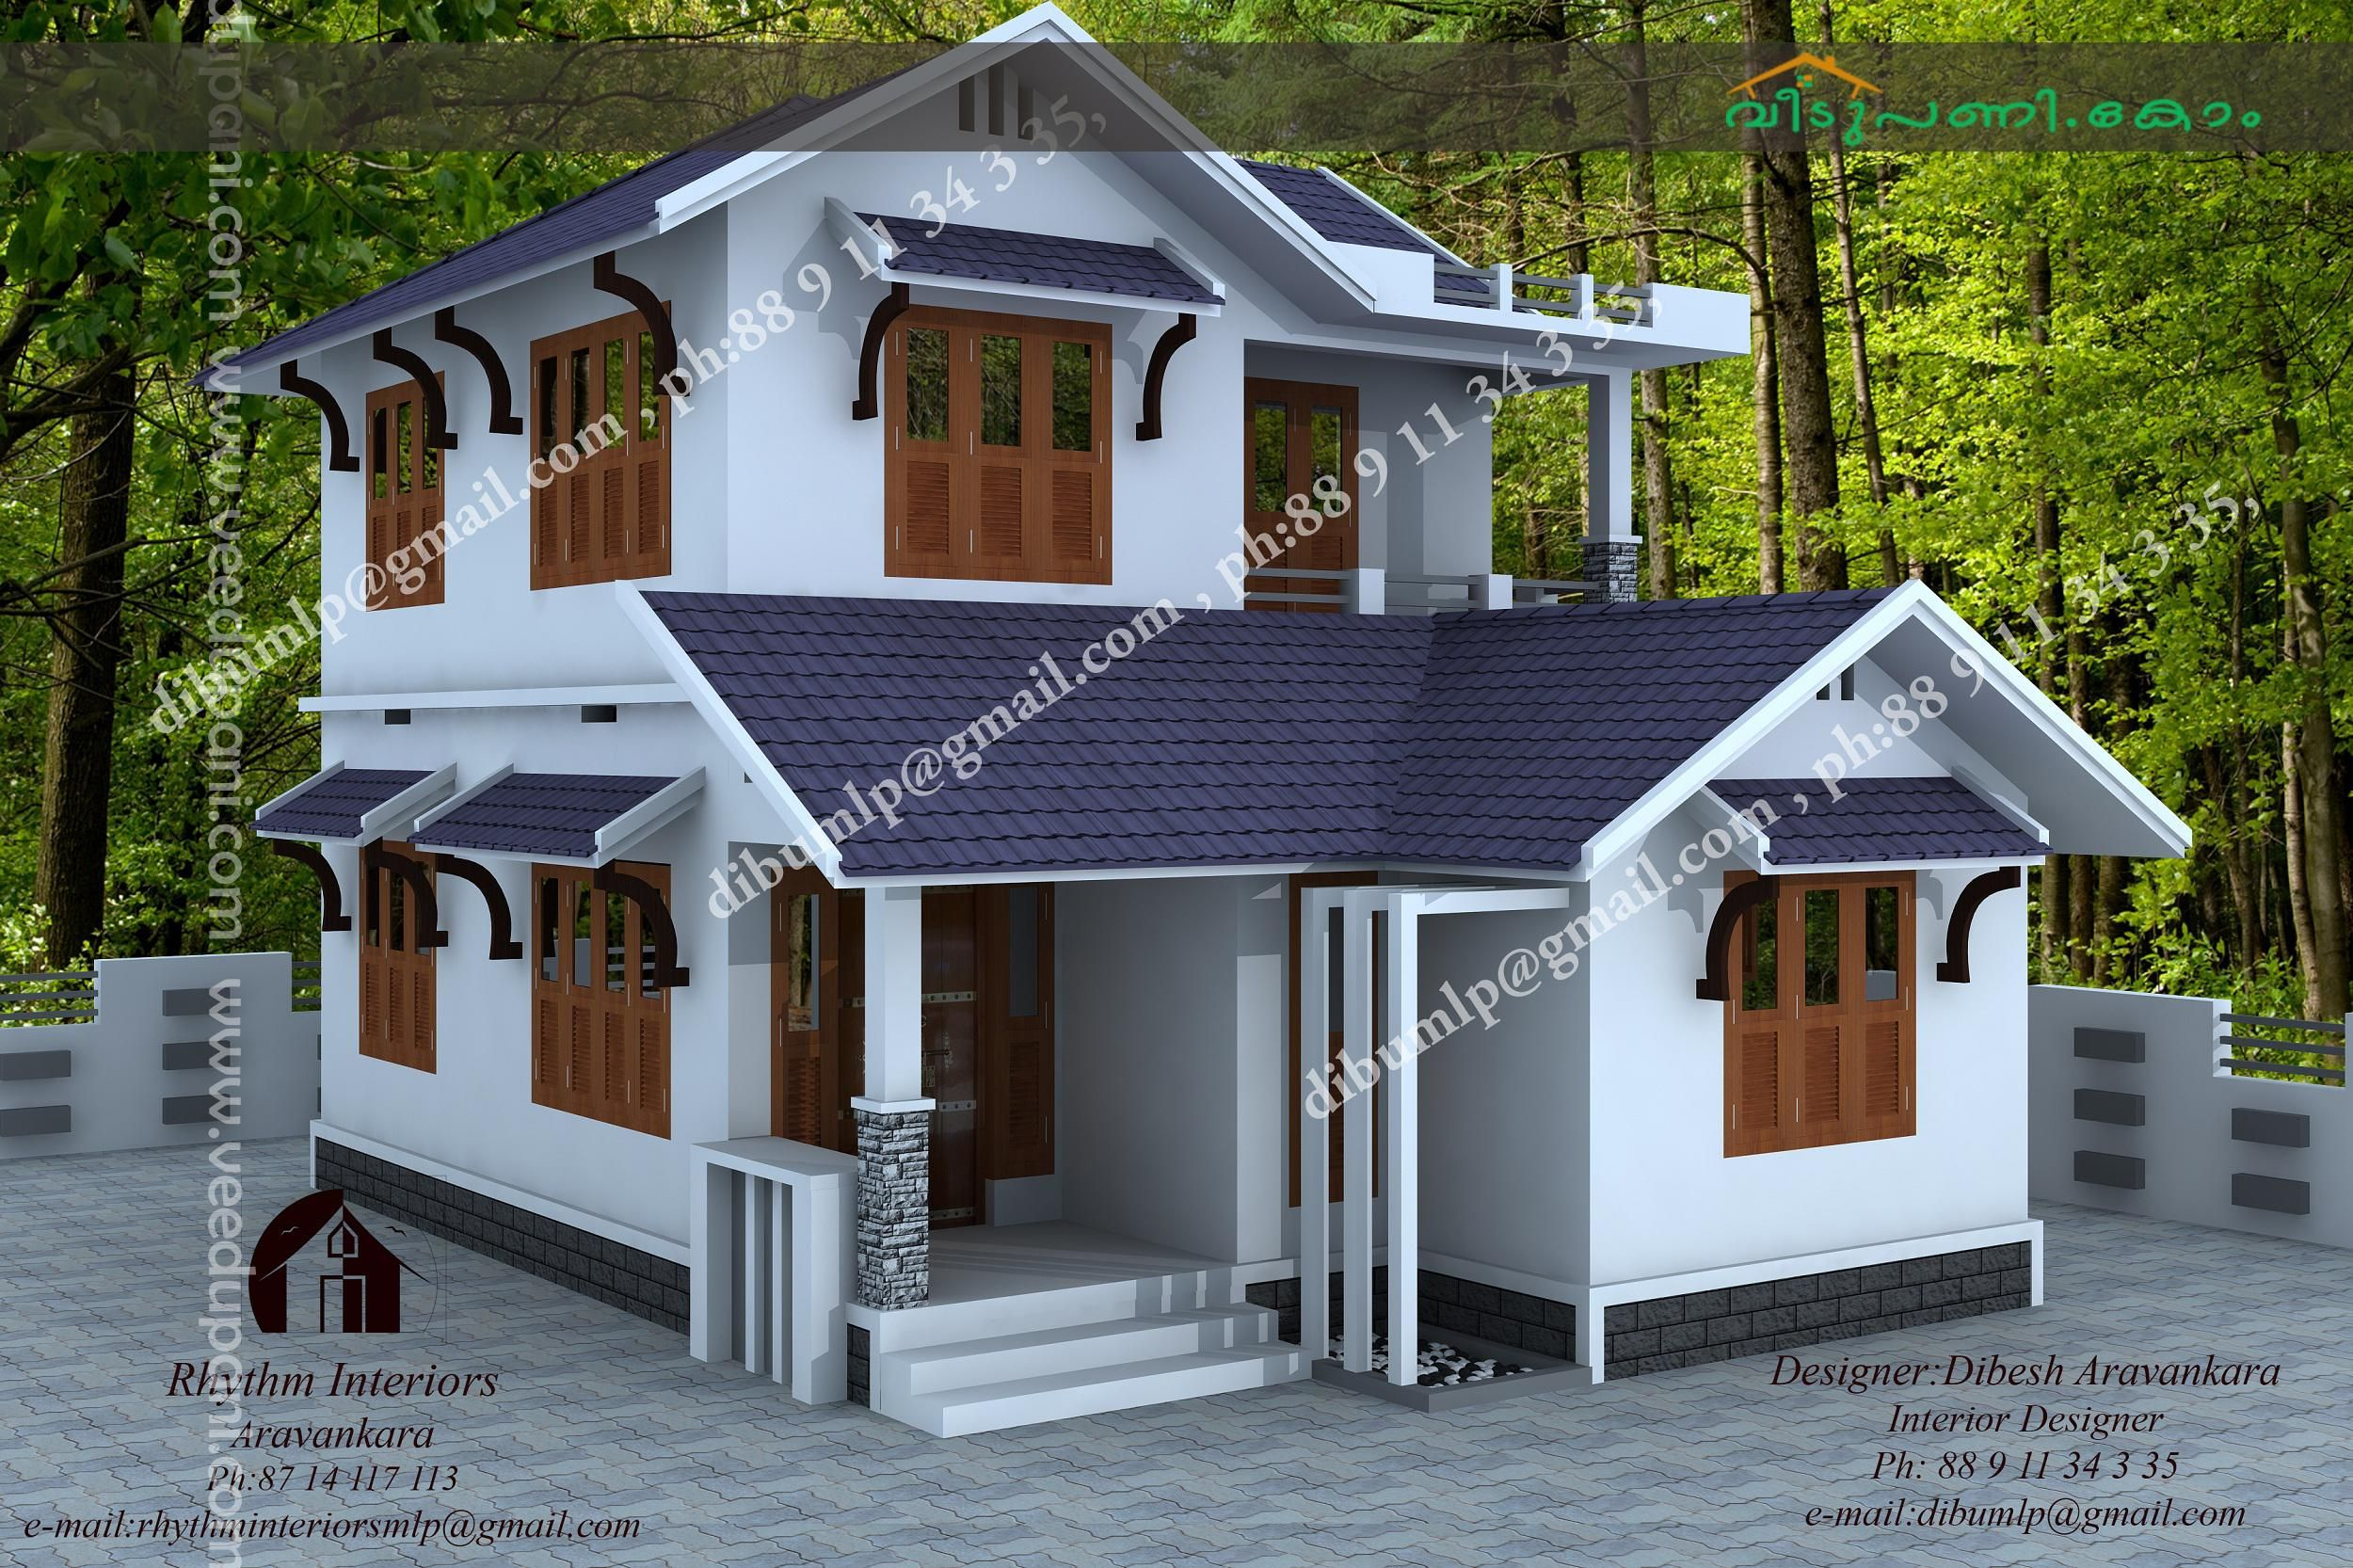 Kerala low budget house plans with photos free modern design for Low cost house plans with photos